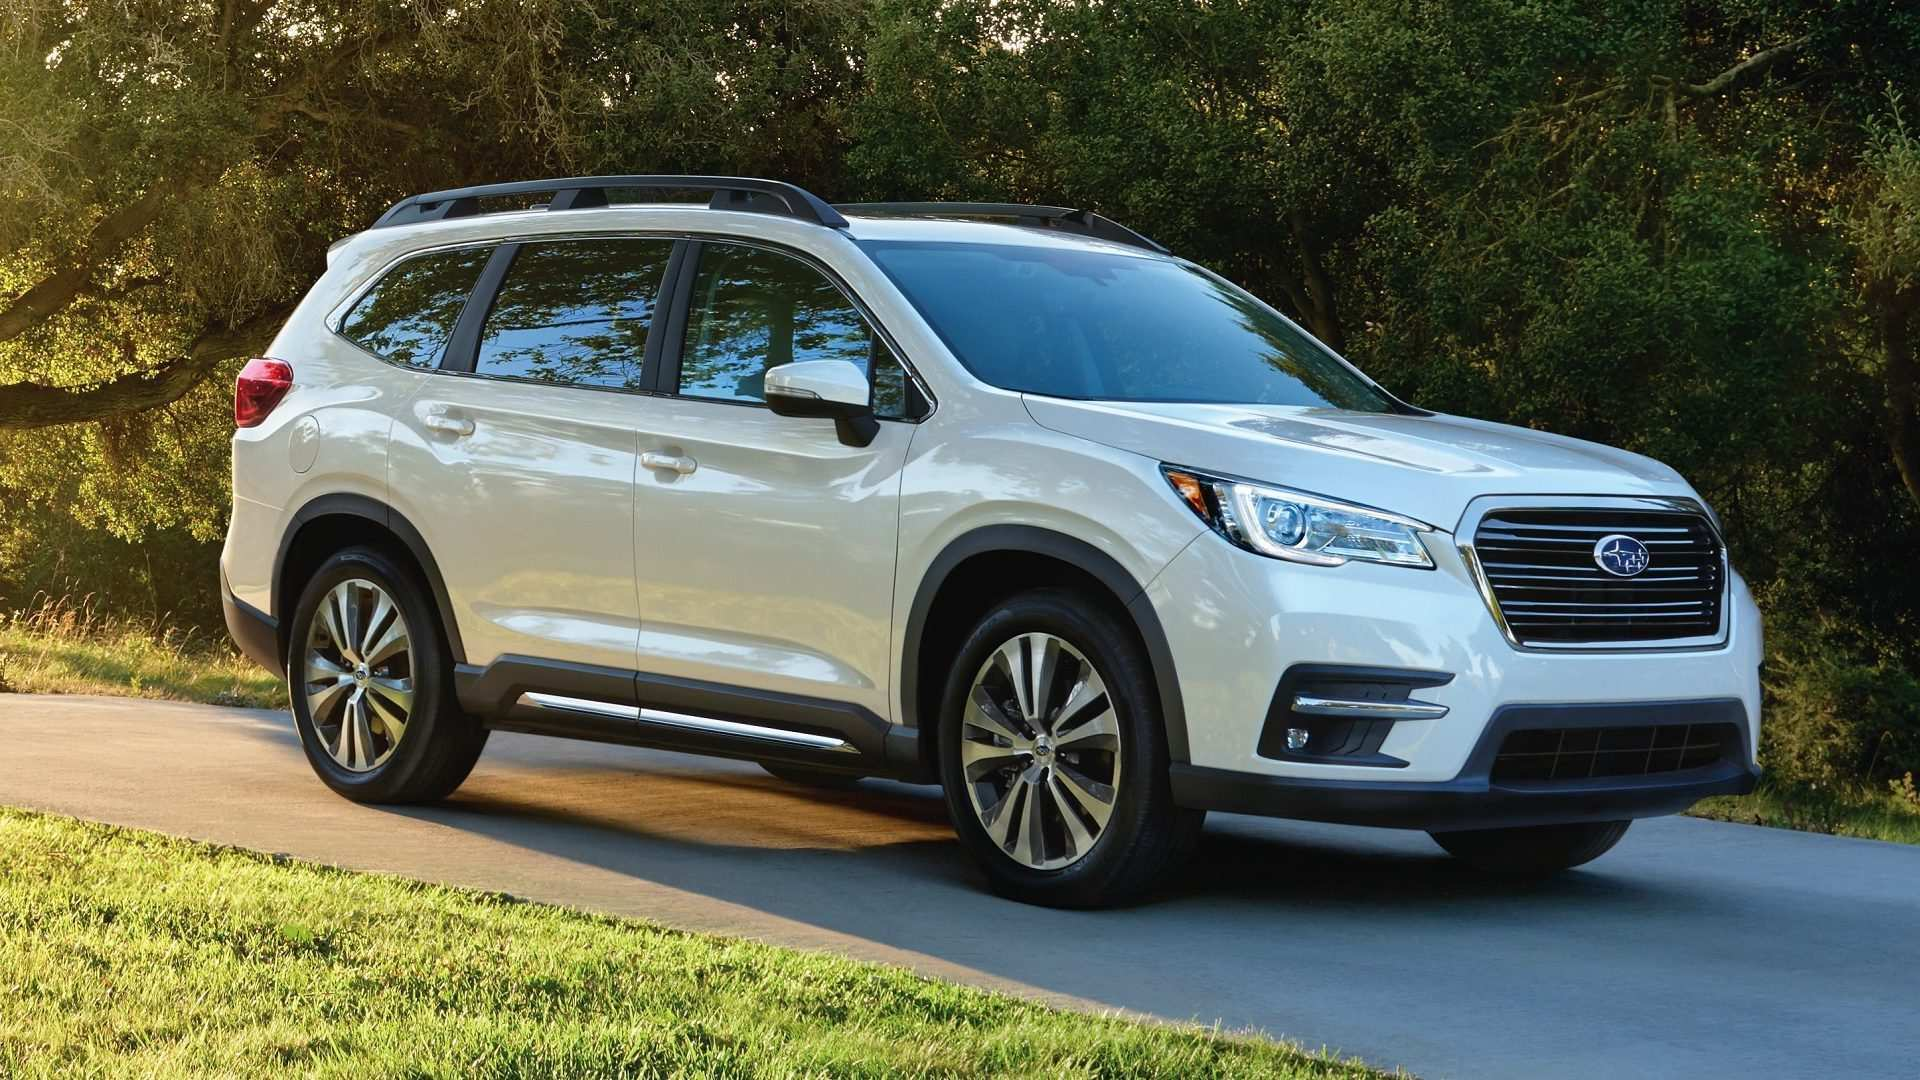 29 Concept of 2019 Subaru Ascent Towing Capacity Price and Review by 2019 Subaru Ascent Towing Capacity